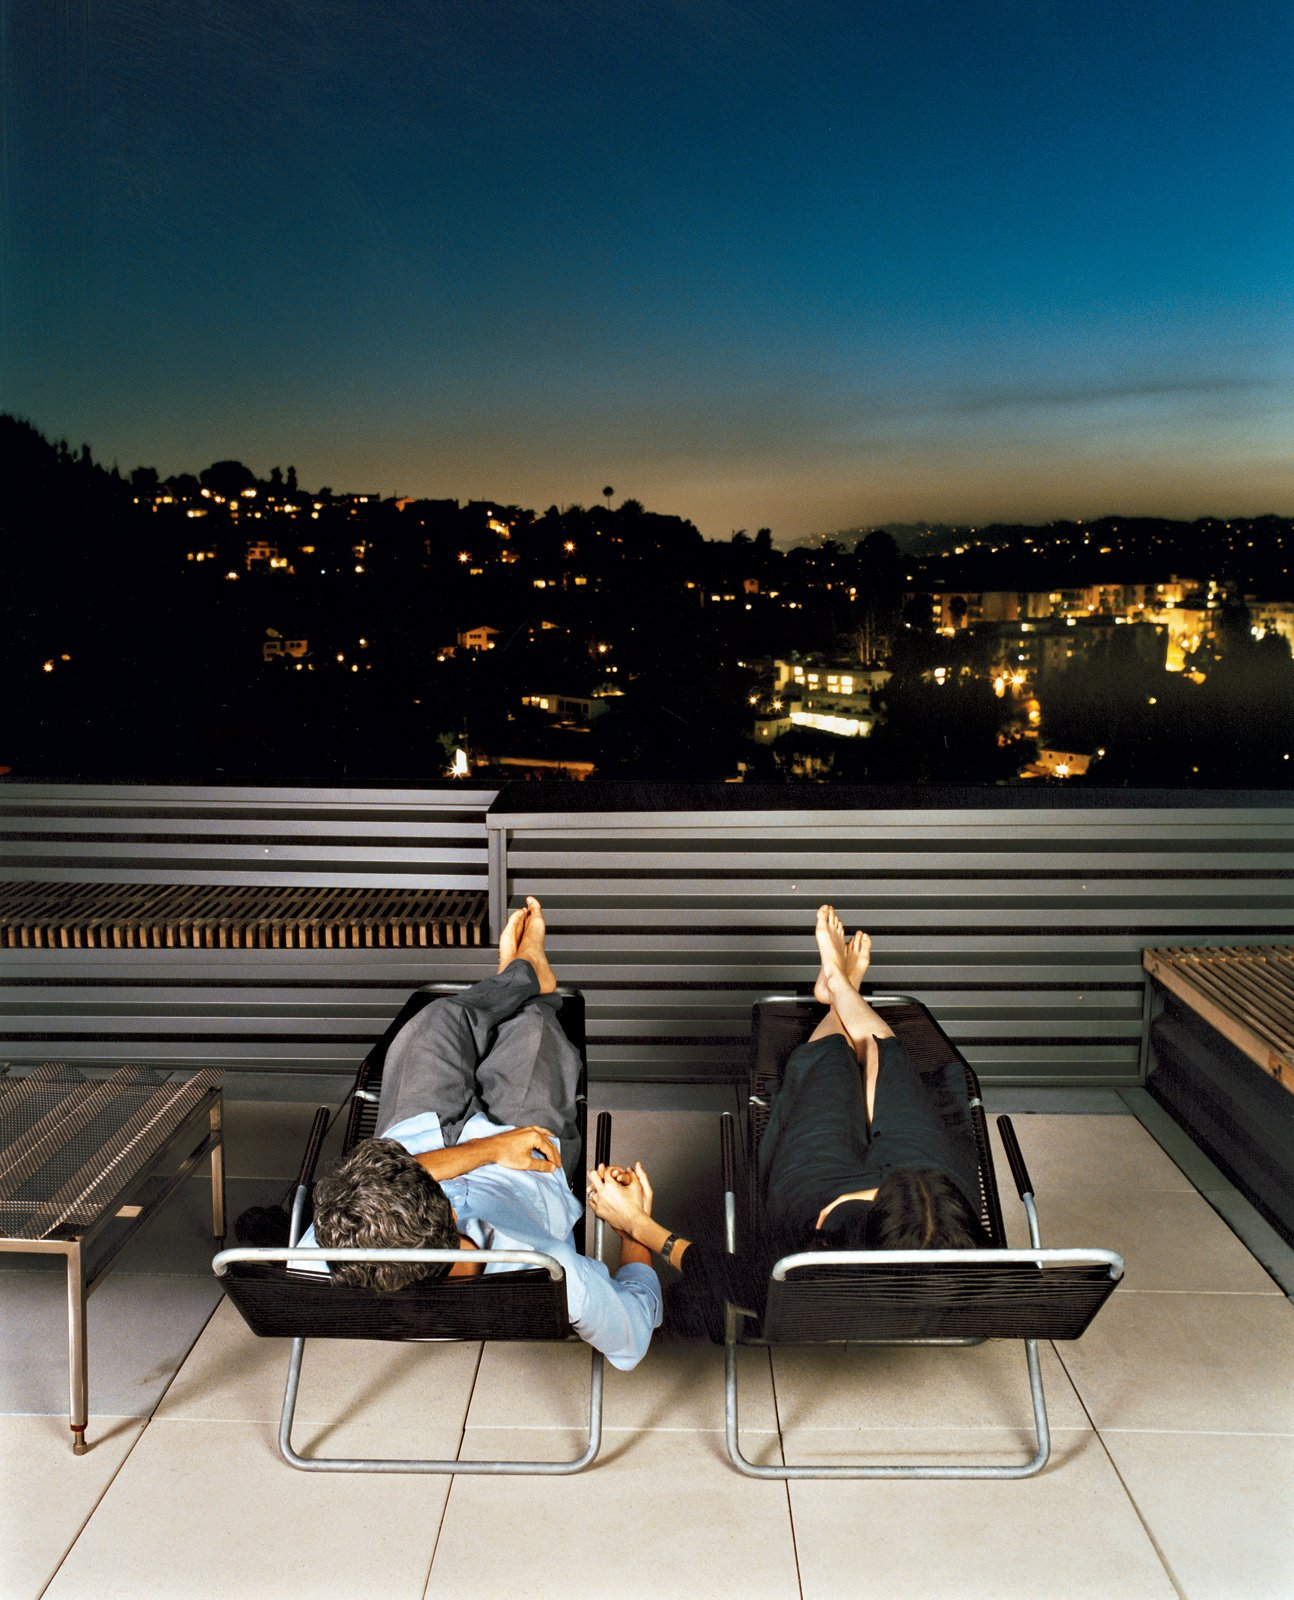 Joe Day and Nina Hachigian relax on their terrace overlooking the hills in Silver Lake area of Los Angeles.  Photo 2 of 12 in Way Out West